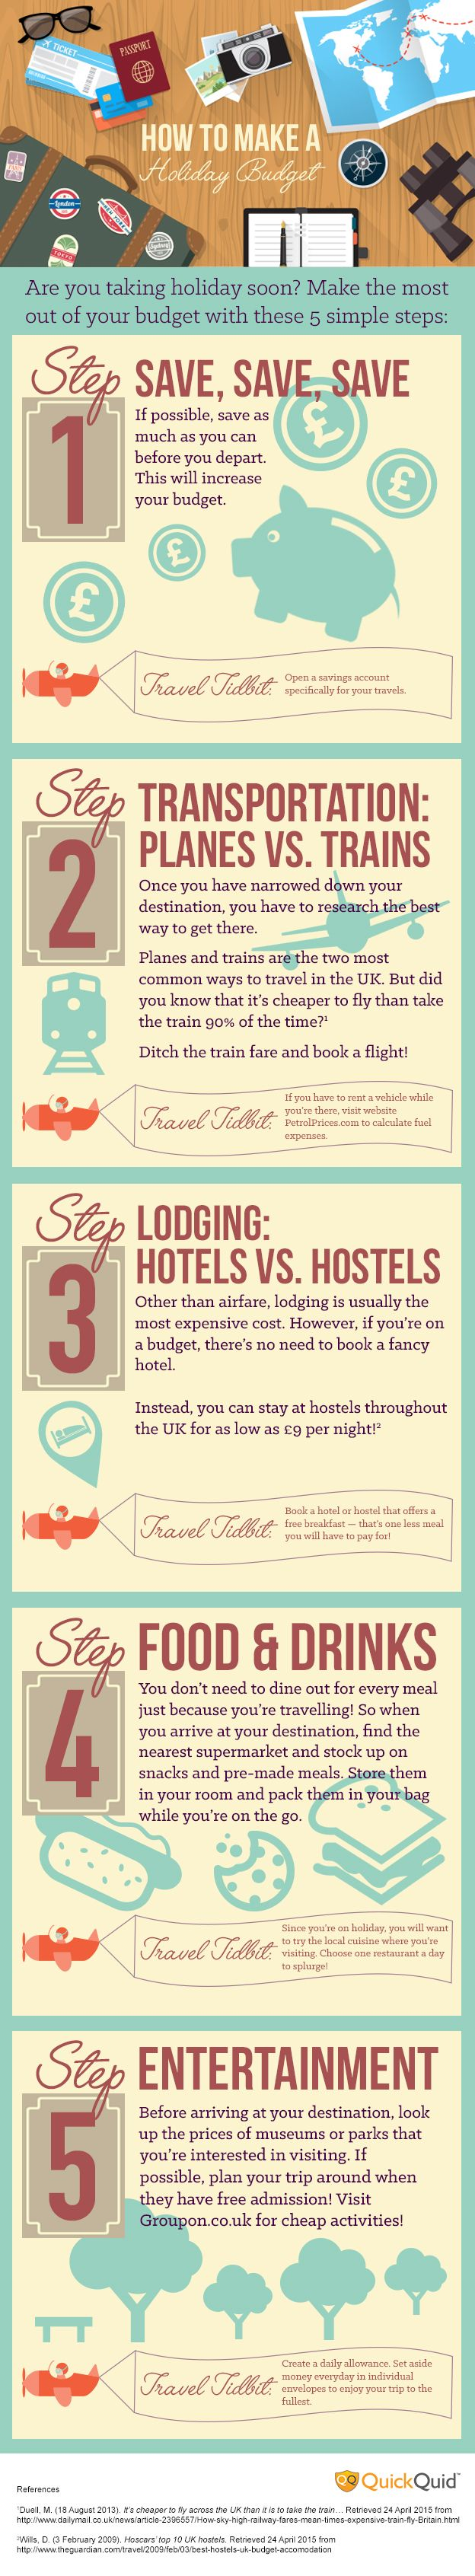 How to Make a Holiday Budget